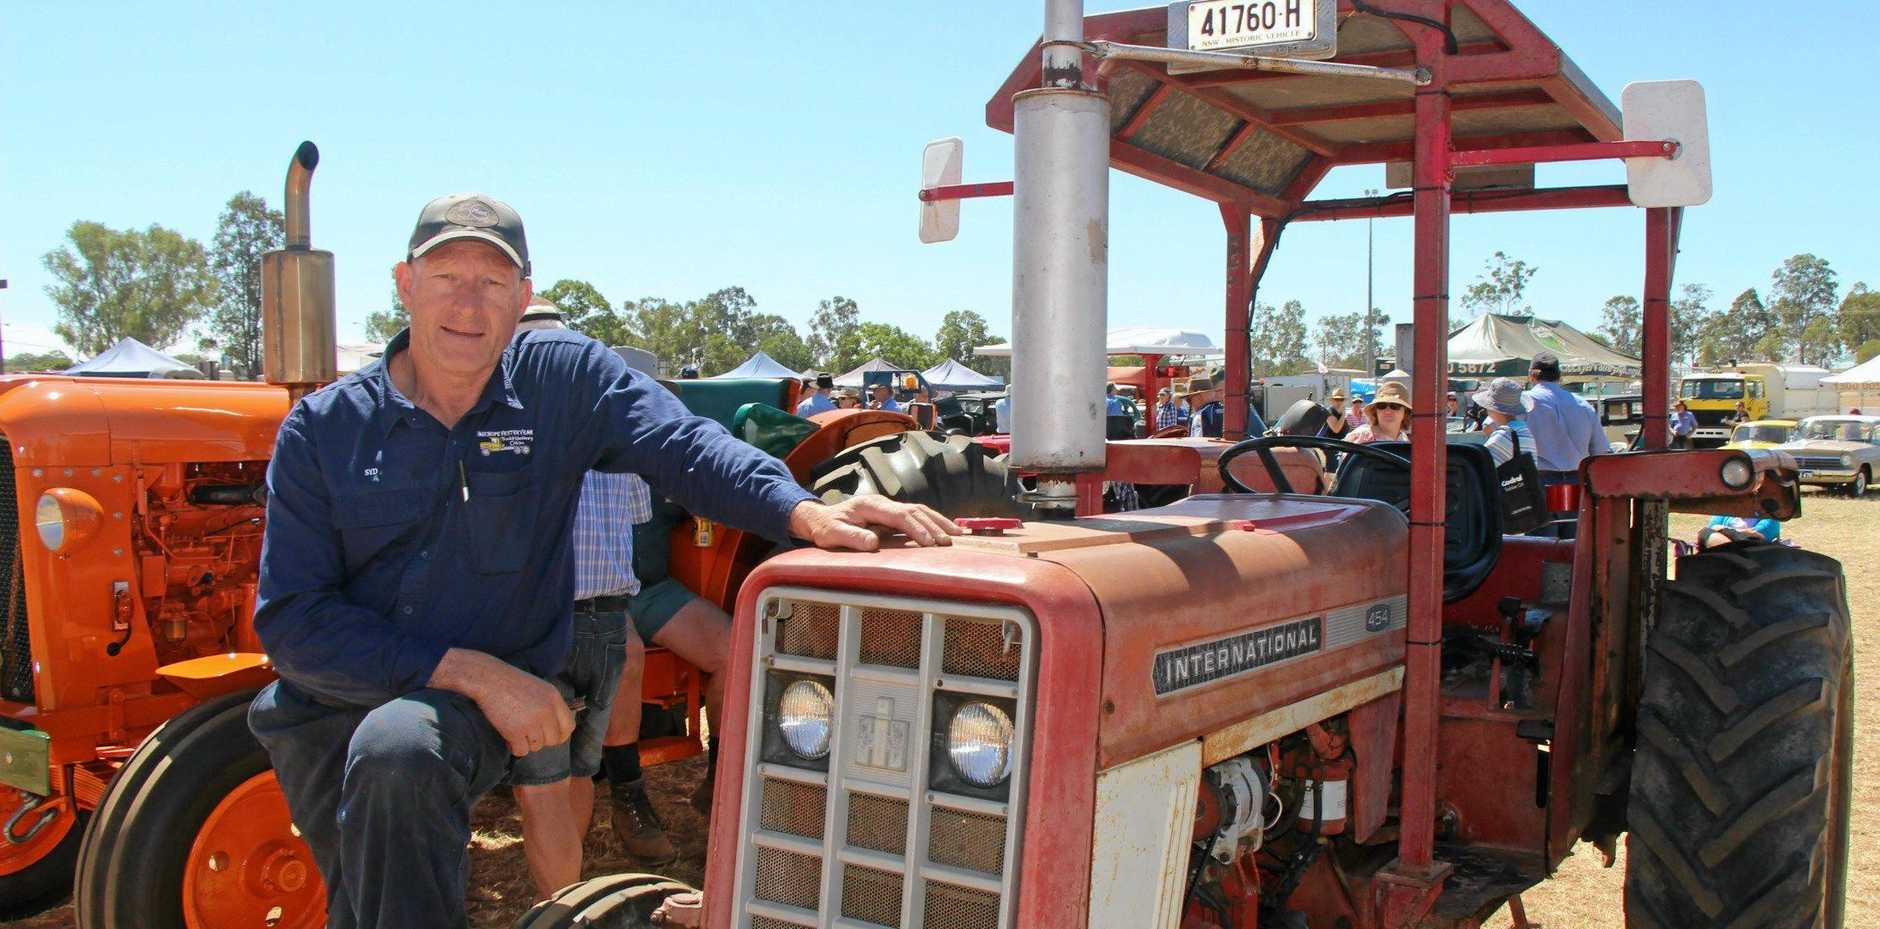 Syd Ramsay drove from Kew NSW to show off his 1973 tractor, inherited from his father, at the 2017 Old Truck and Machinery Show in Gatton.